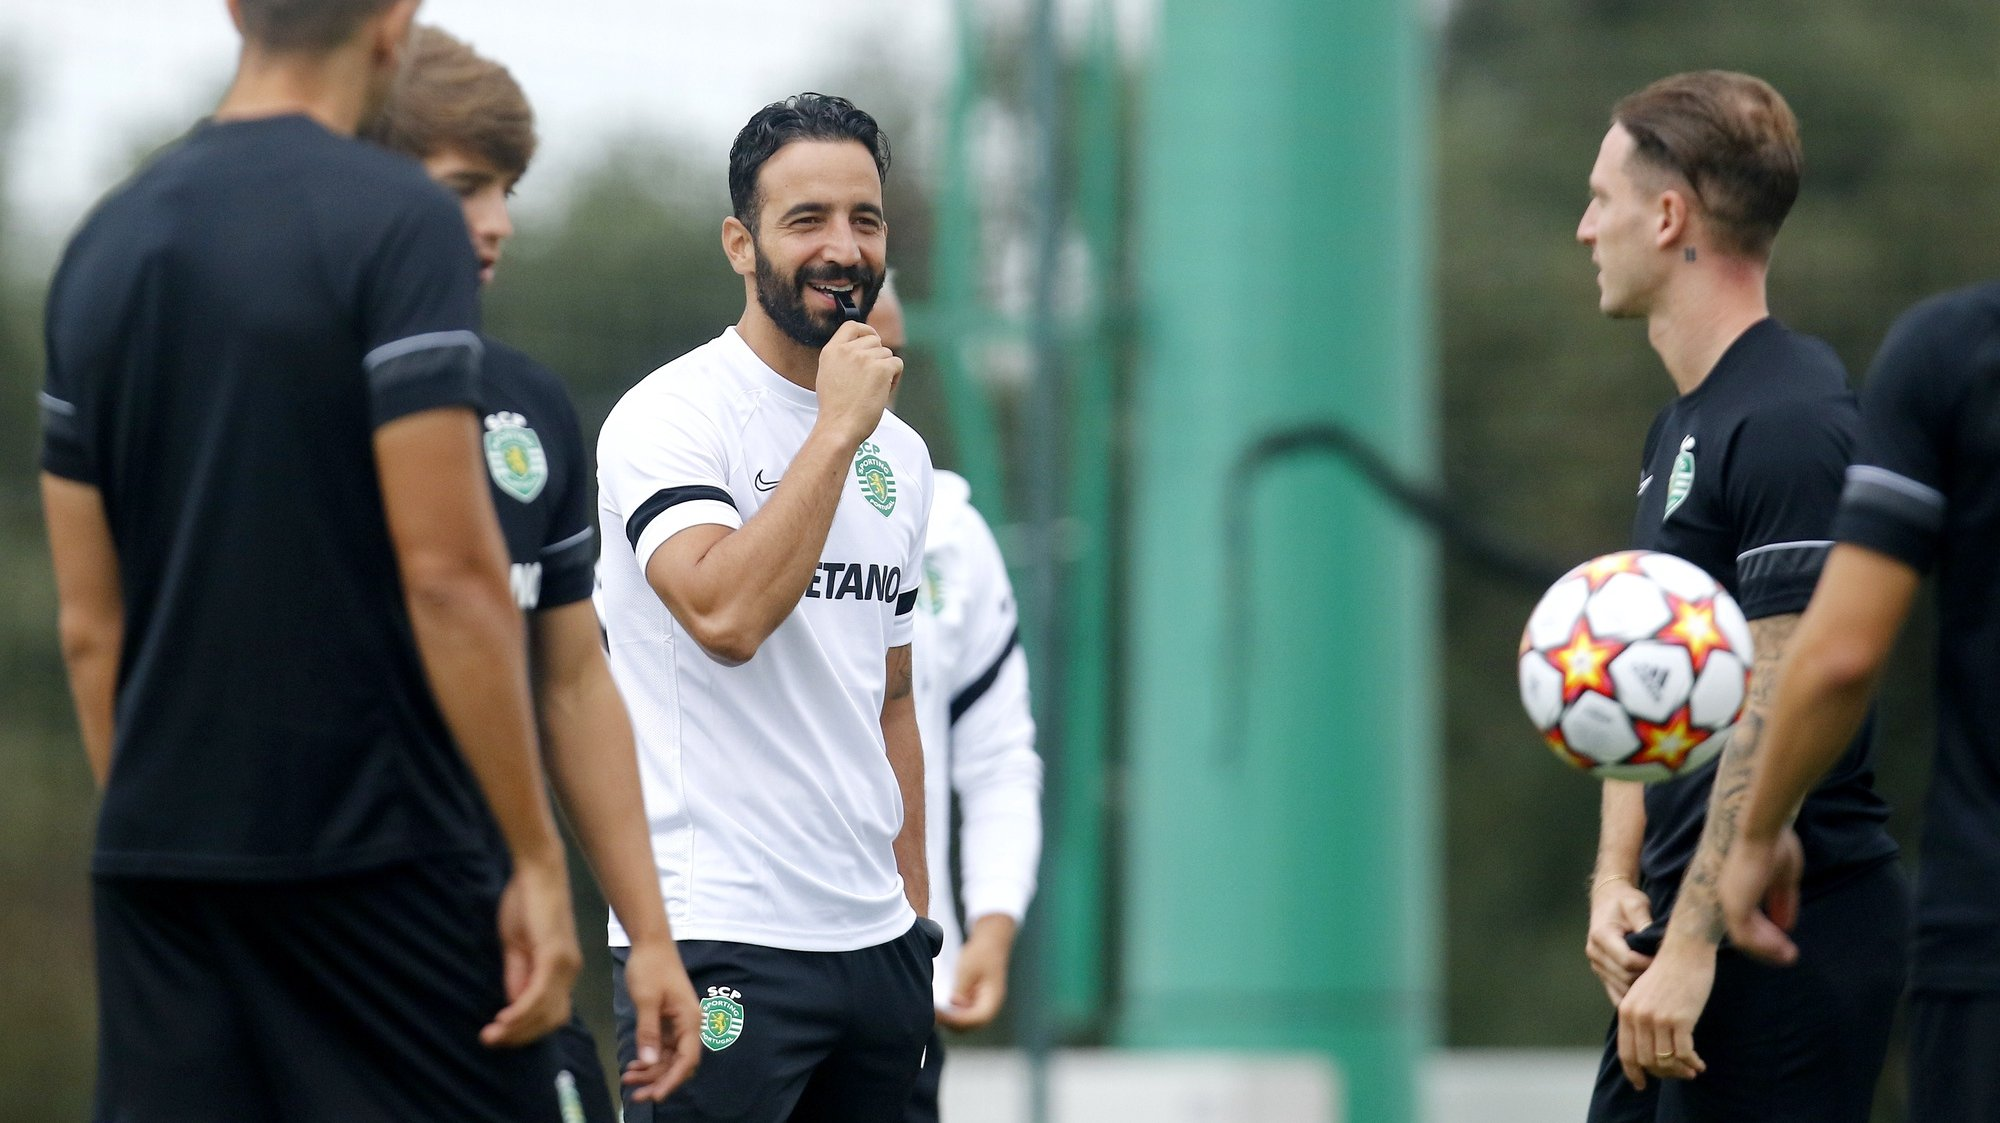 Sporting head coach Ruben Amorim during a training session in preparation for the upcoming Champions League soccer match with Ajax, Alcochete, Portugal, 14th September 2021. RUI MINDERICO/LUSA